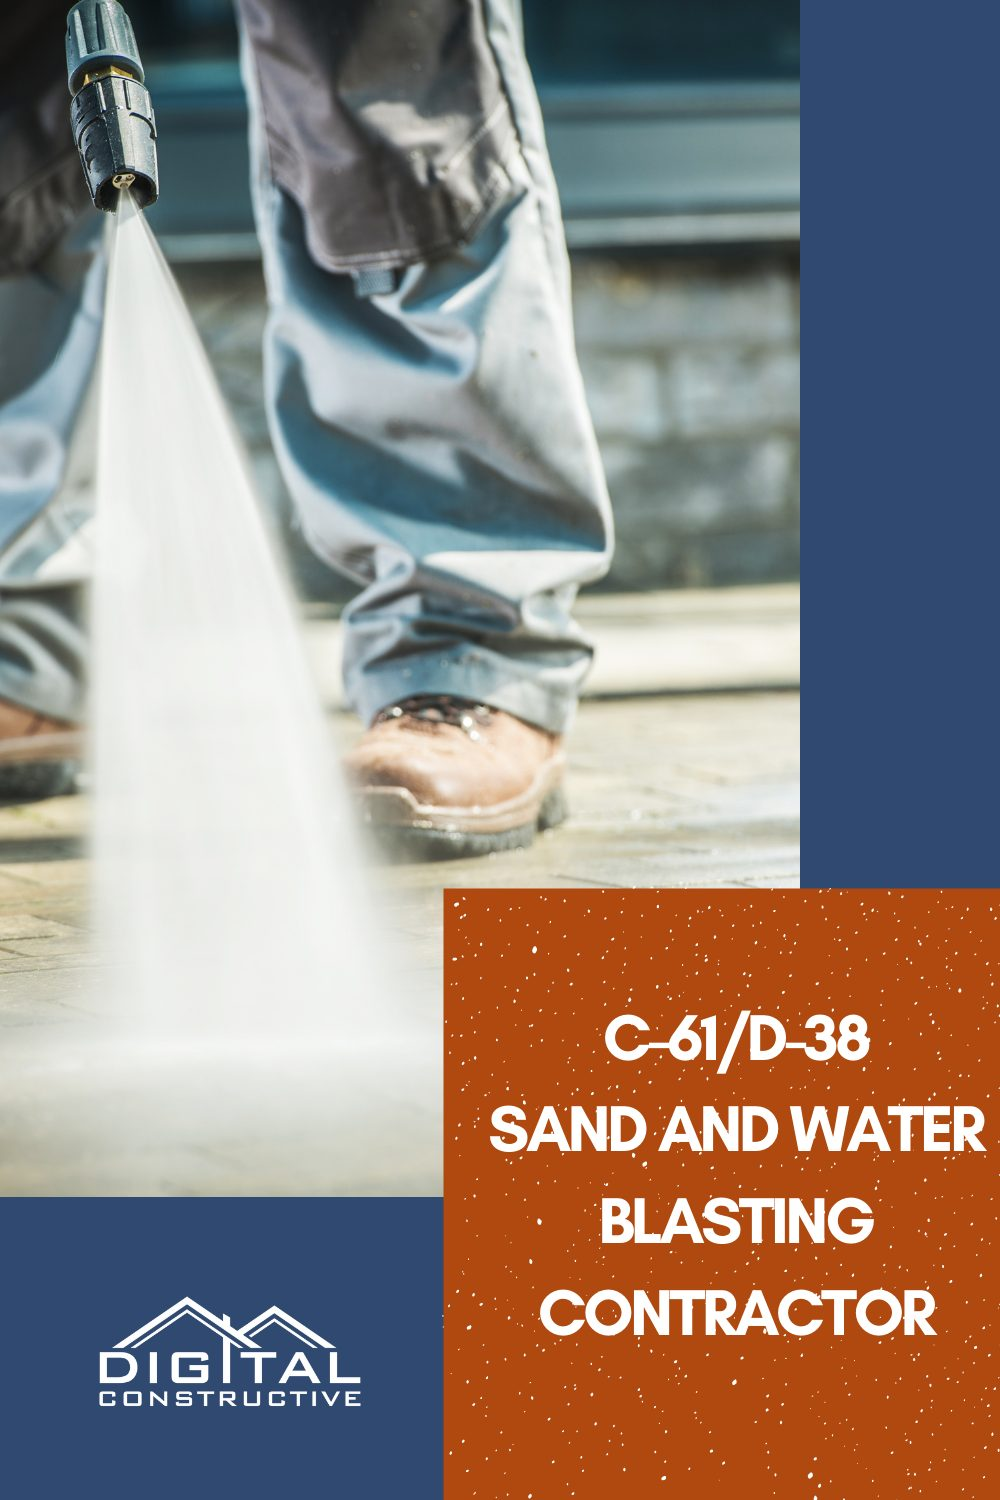 what can you do with a C-61/D-38 sand and water blasting contractor license for pressure washing in California